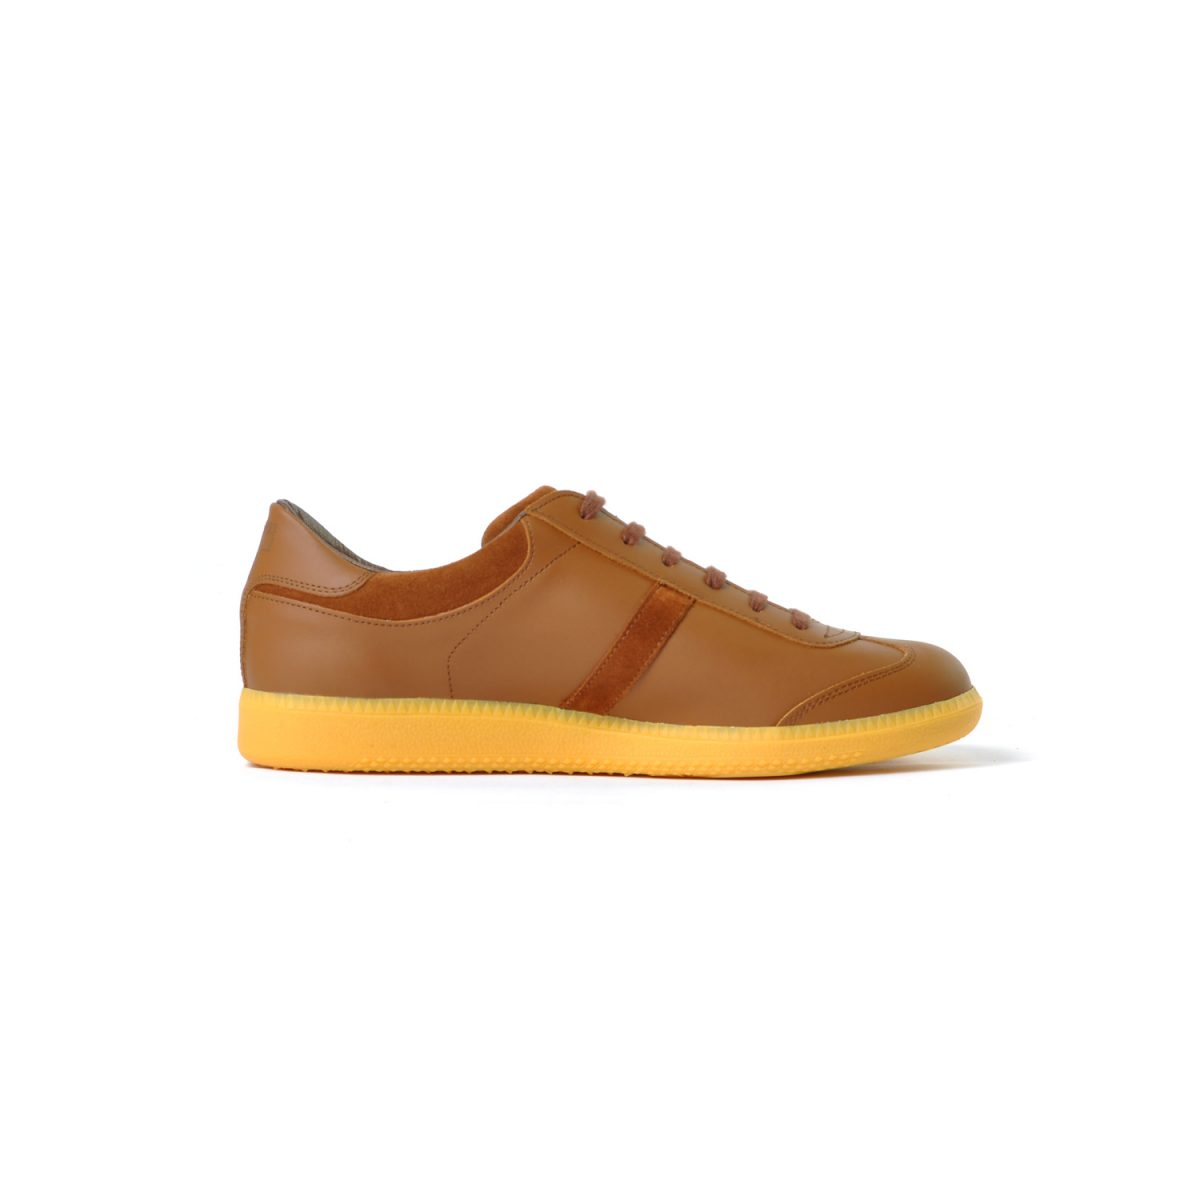 Tisza shoes - Compakt - Bronze-rust